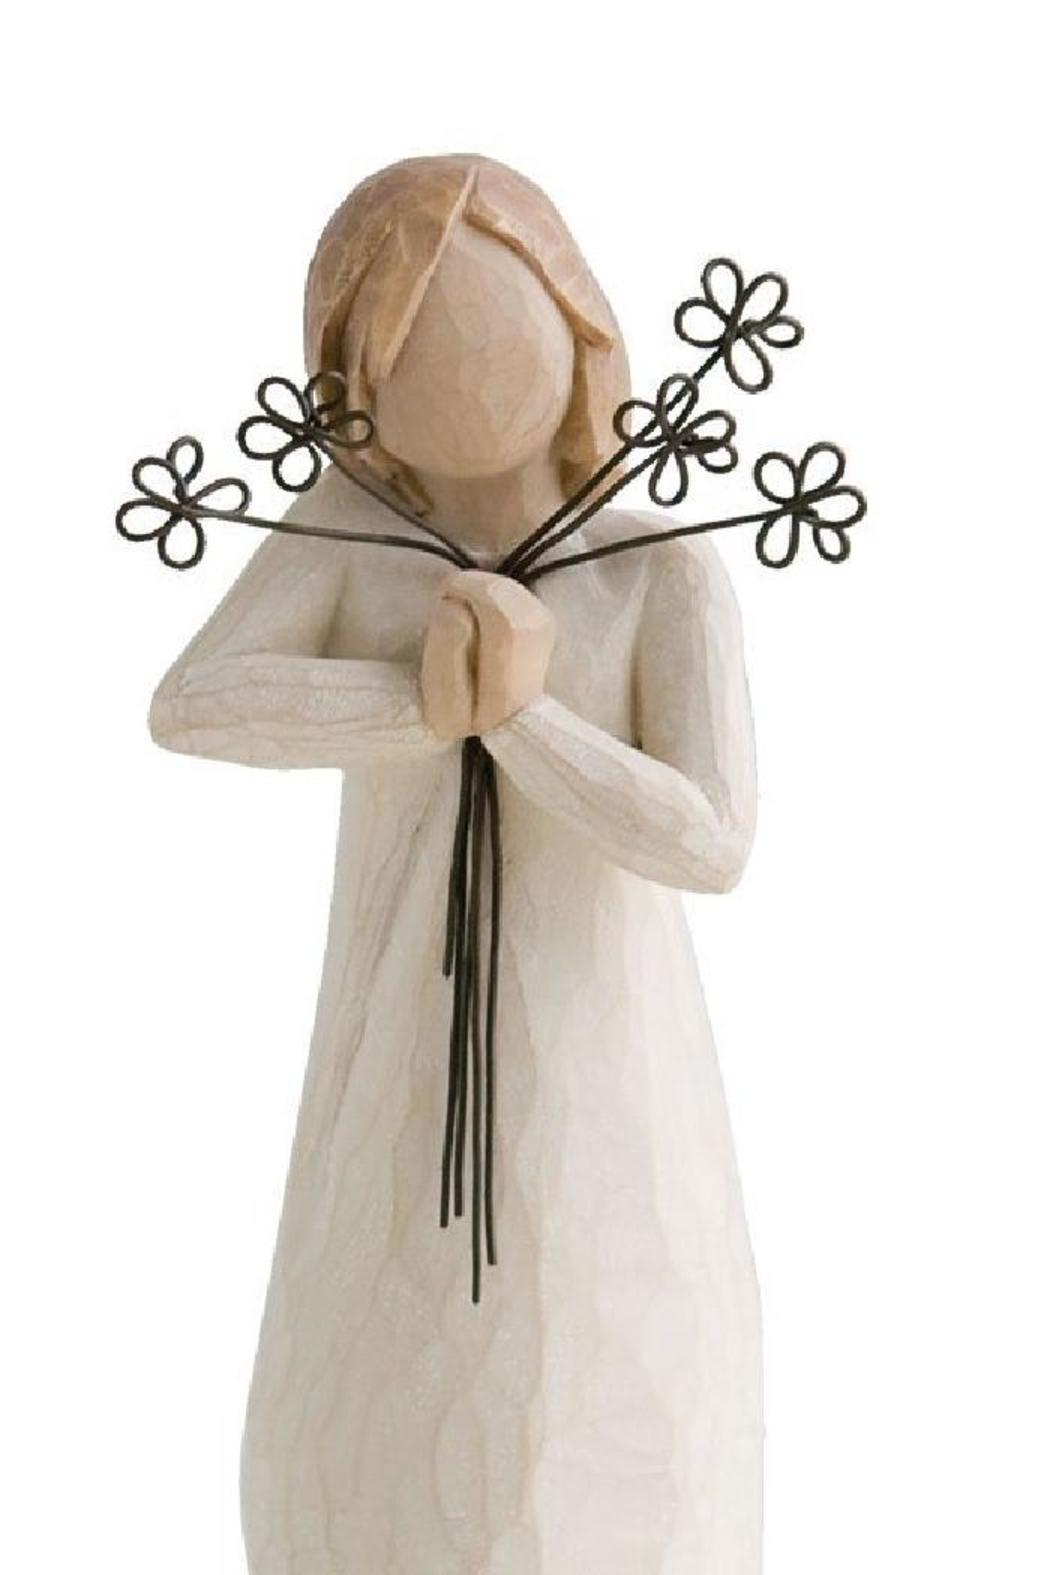 Willow Tree(r) by Susan Lordi, from DEMDACO Friendship Wood Figurine - Main Image